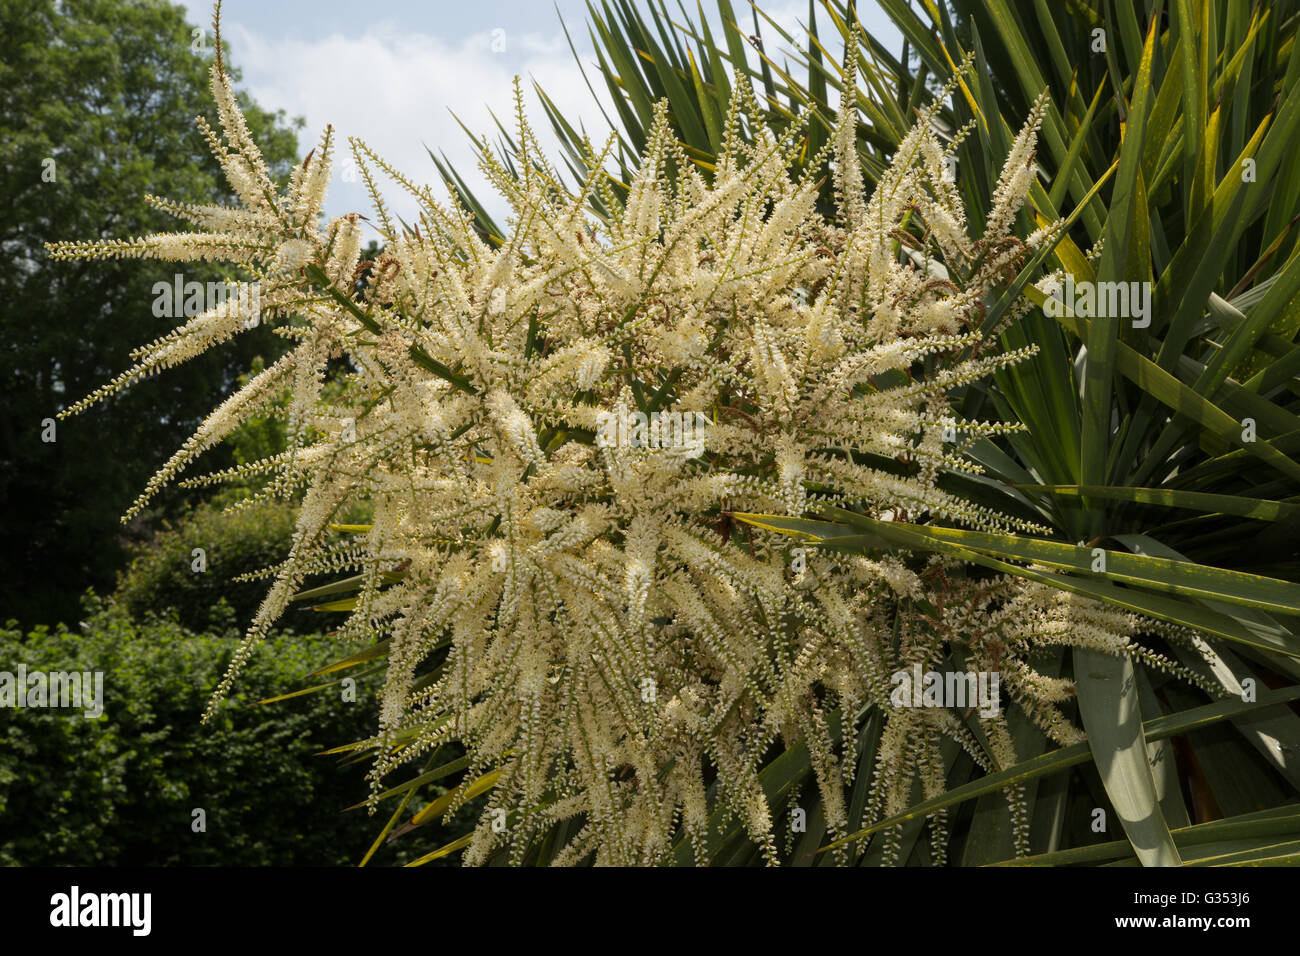 Cordyline Australis Flowers Commonly Known As The Cabbage Tree Stock Photo Alamy